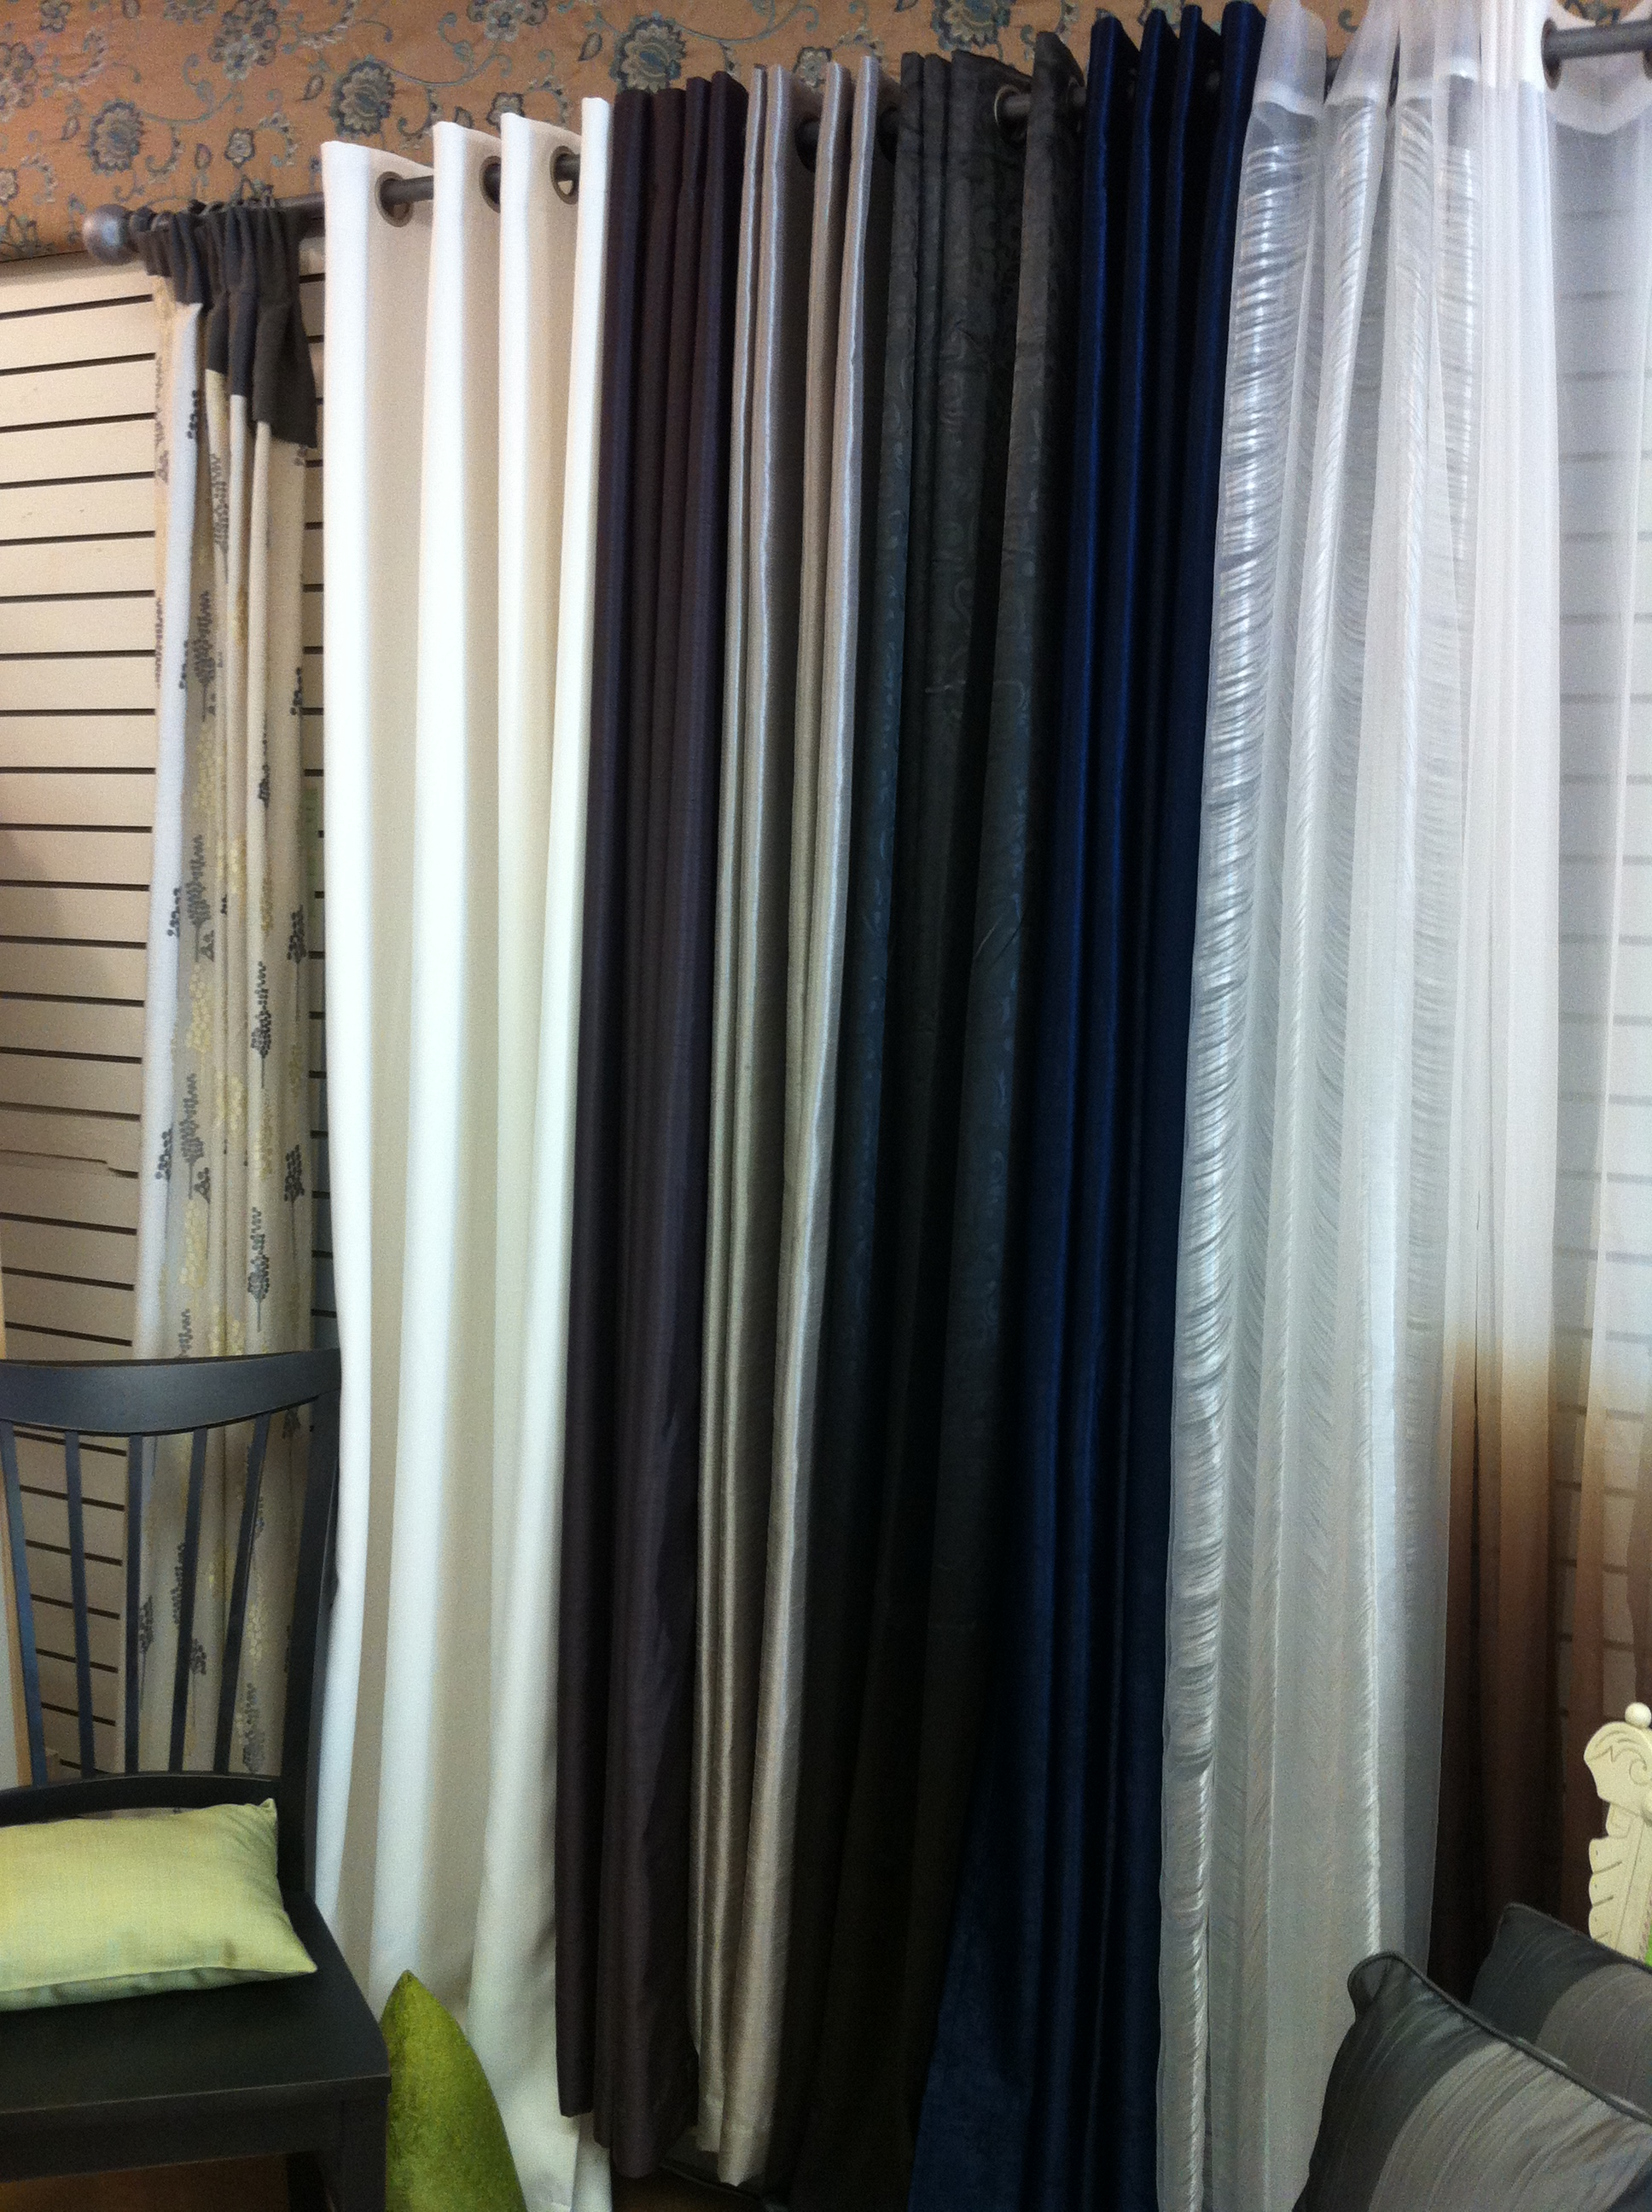 photos ring full concept laura awning top curtain ready hedgerow of elba g curtains lined drapes stripe pencil studio size pleat eyelet ashley linens sensational made plain linen